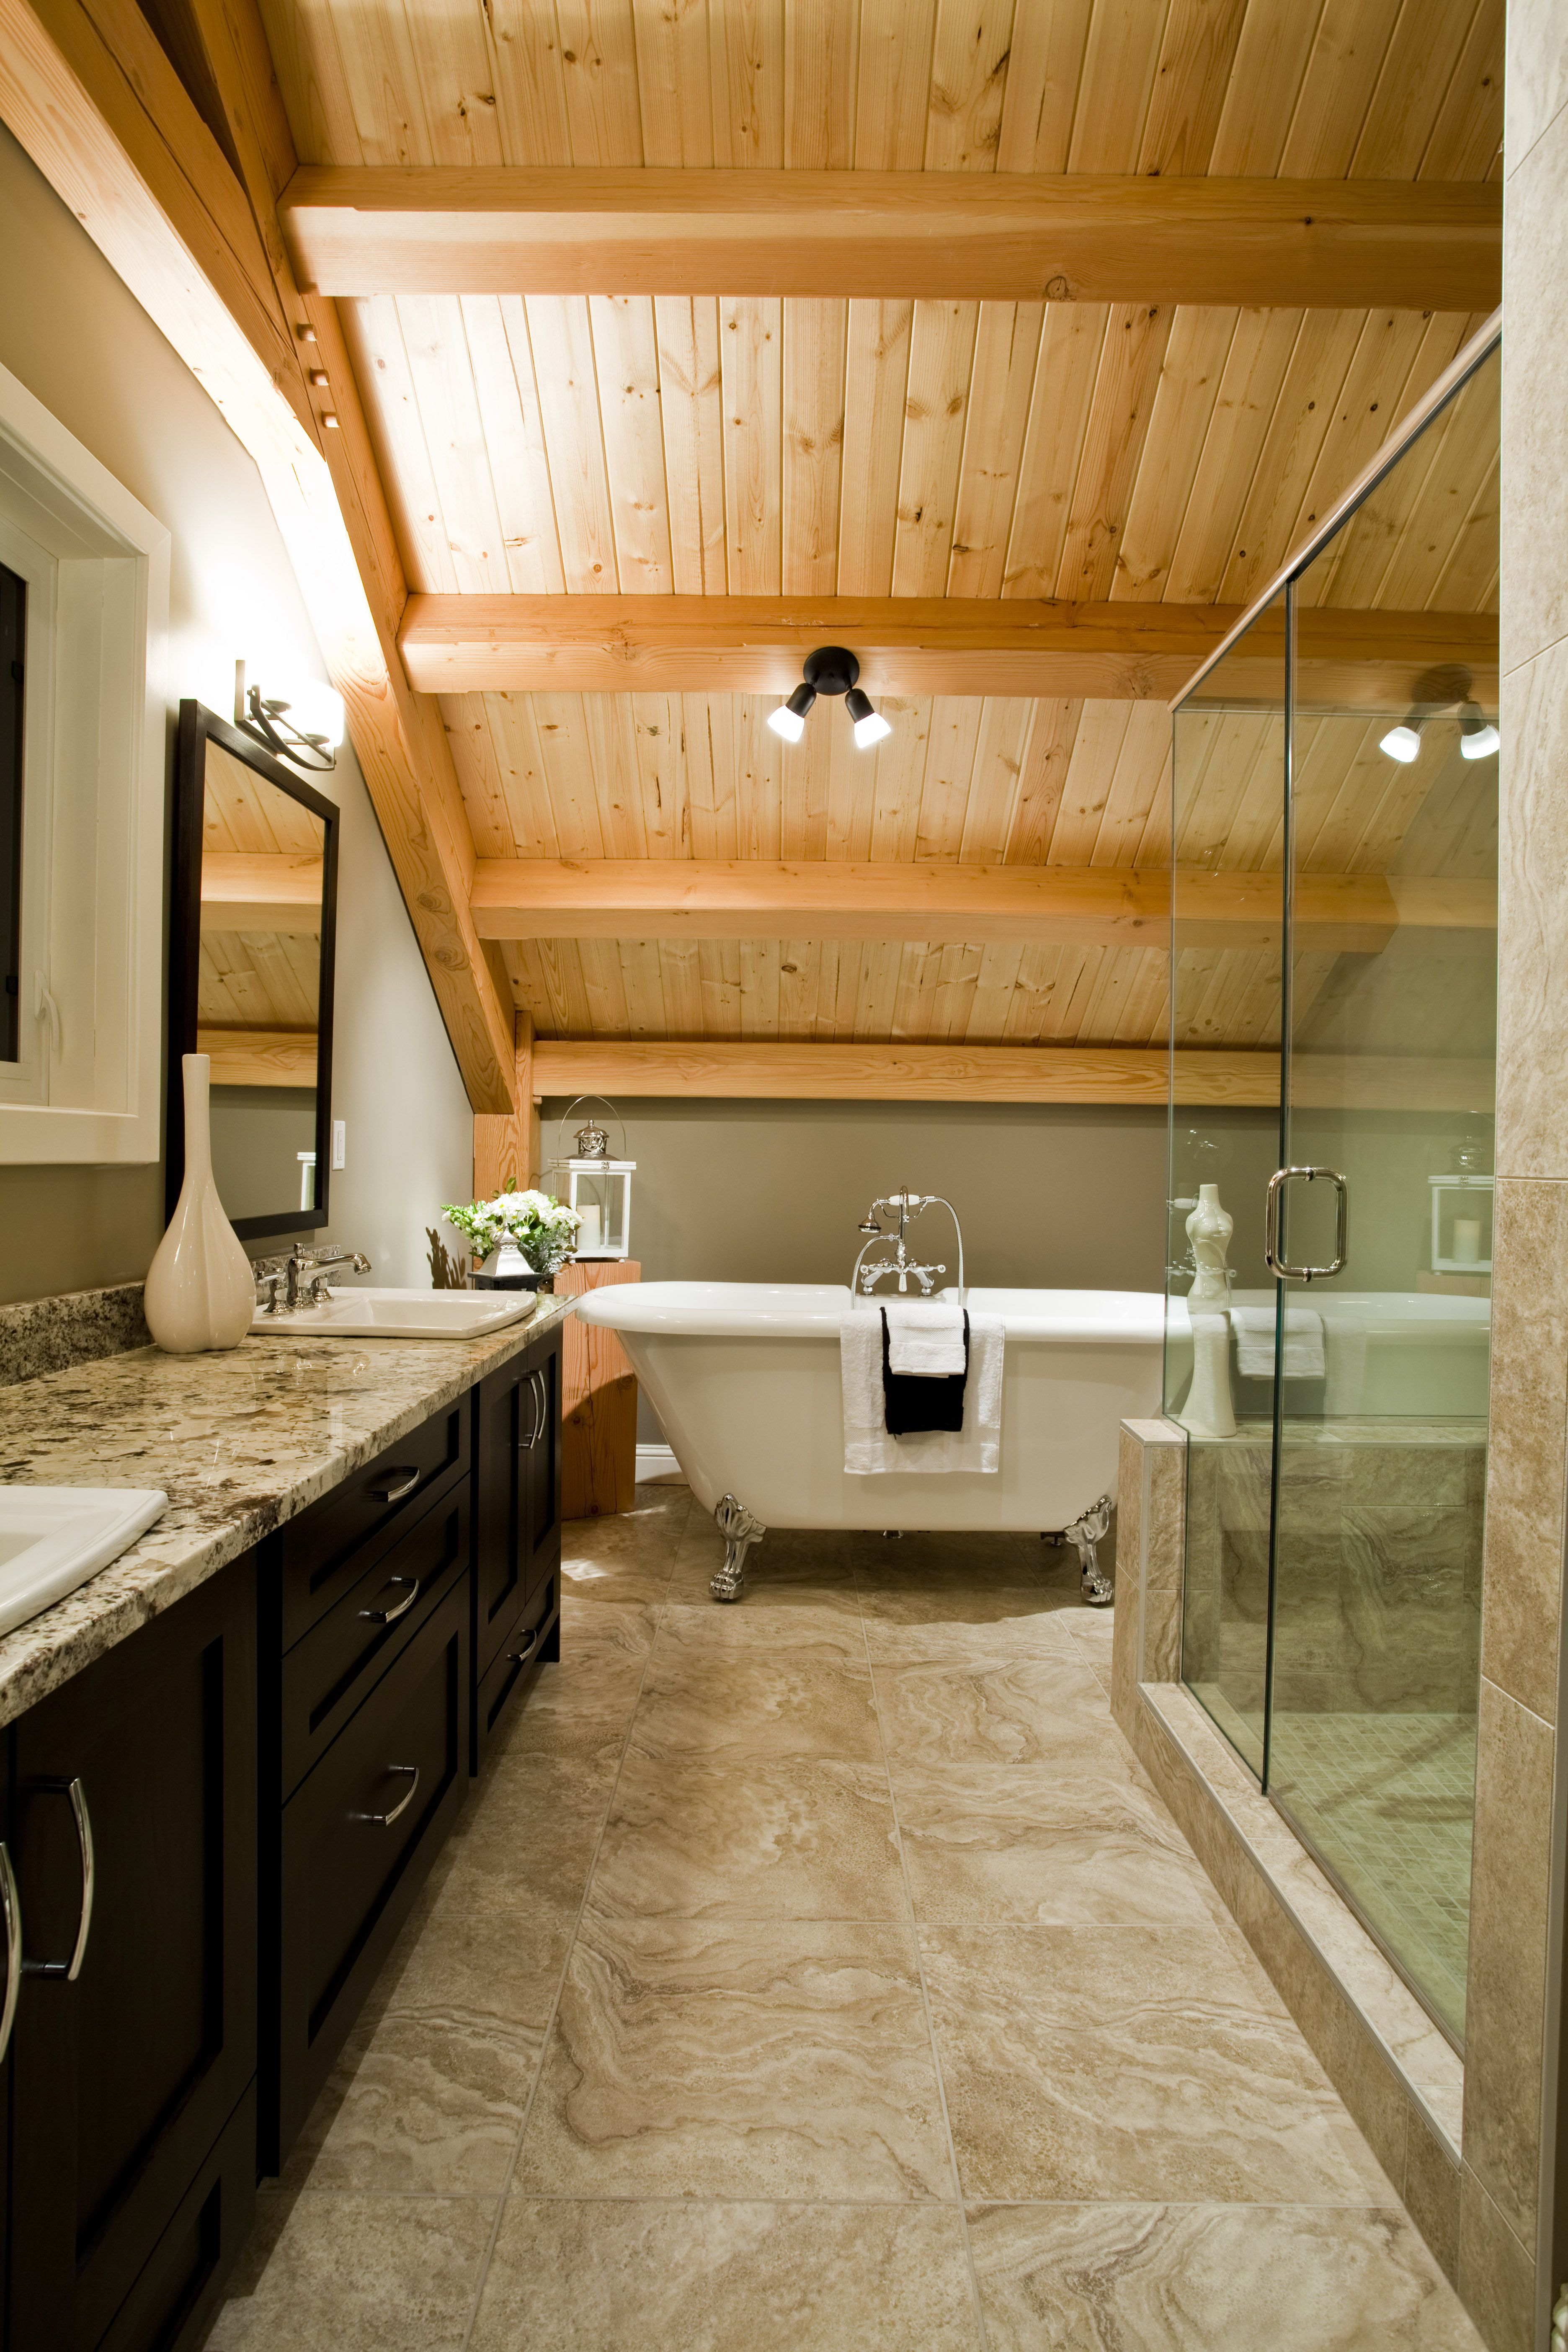 Ensuite Bathroom And Shower master ensuite bath with clawfoot tub and walk-in glass shower